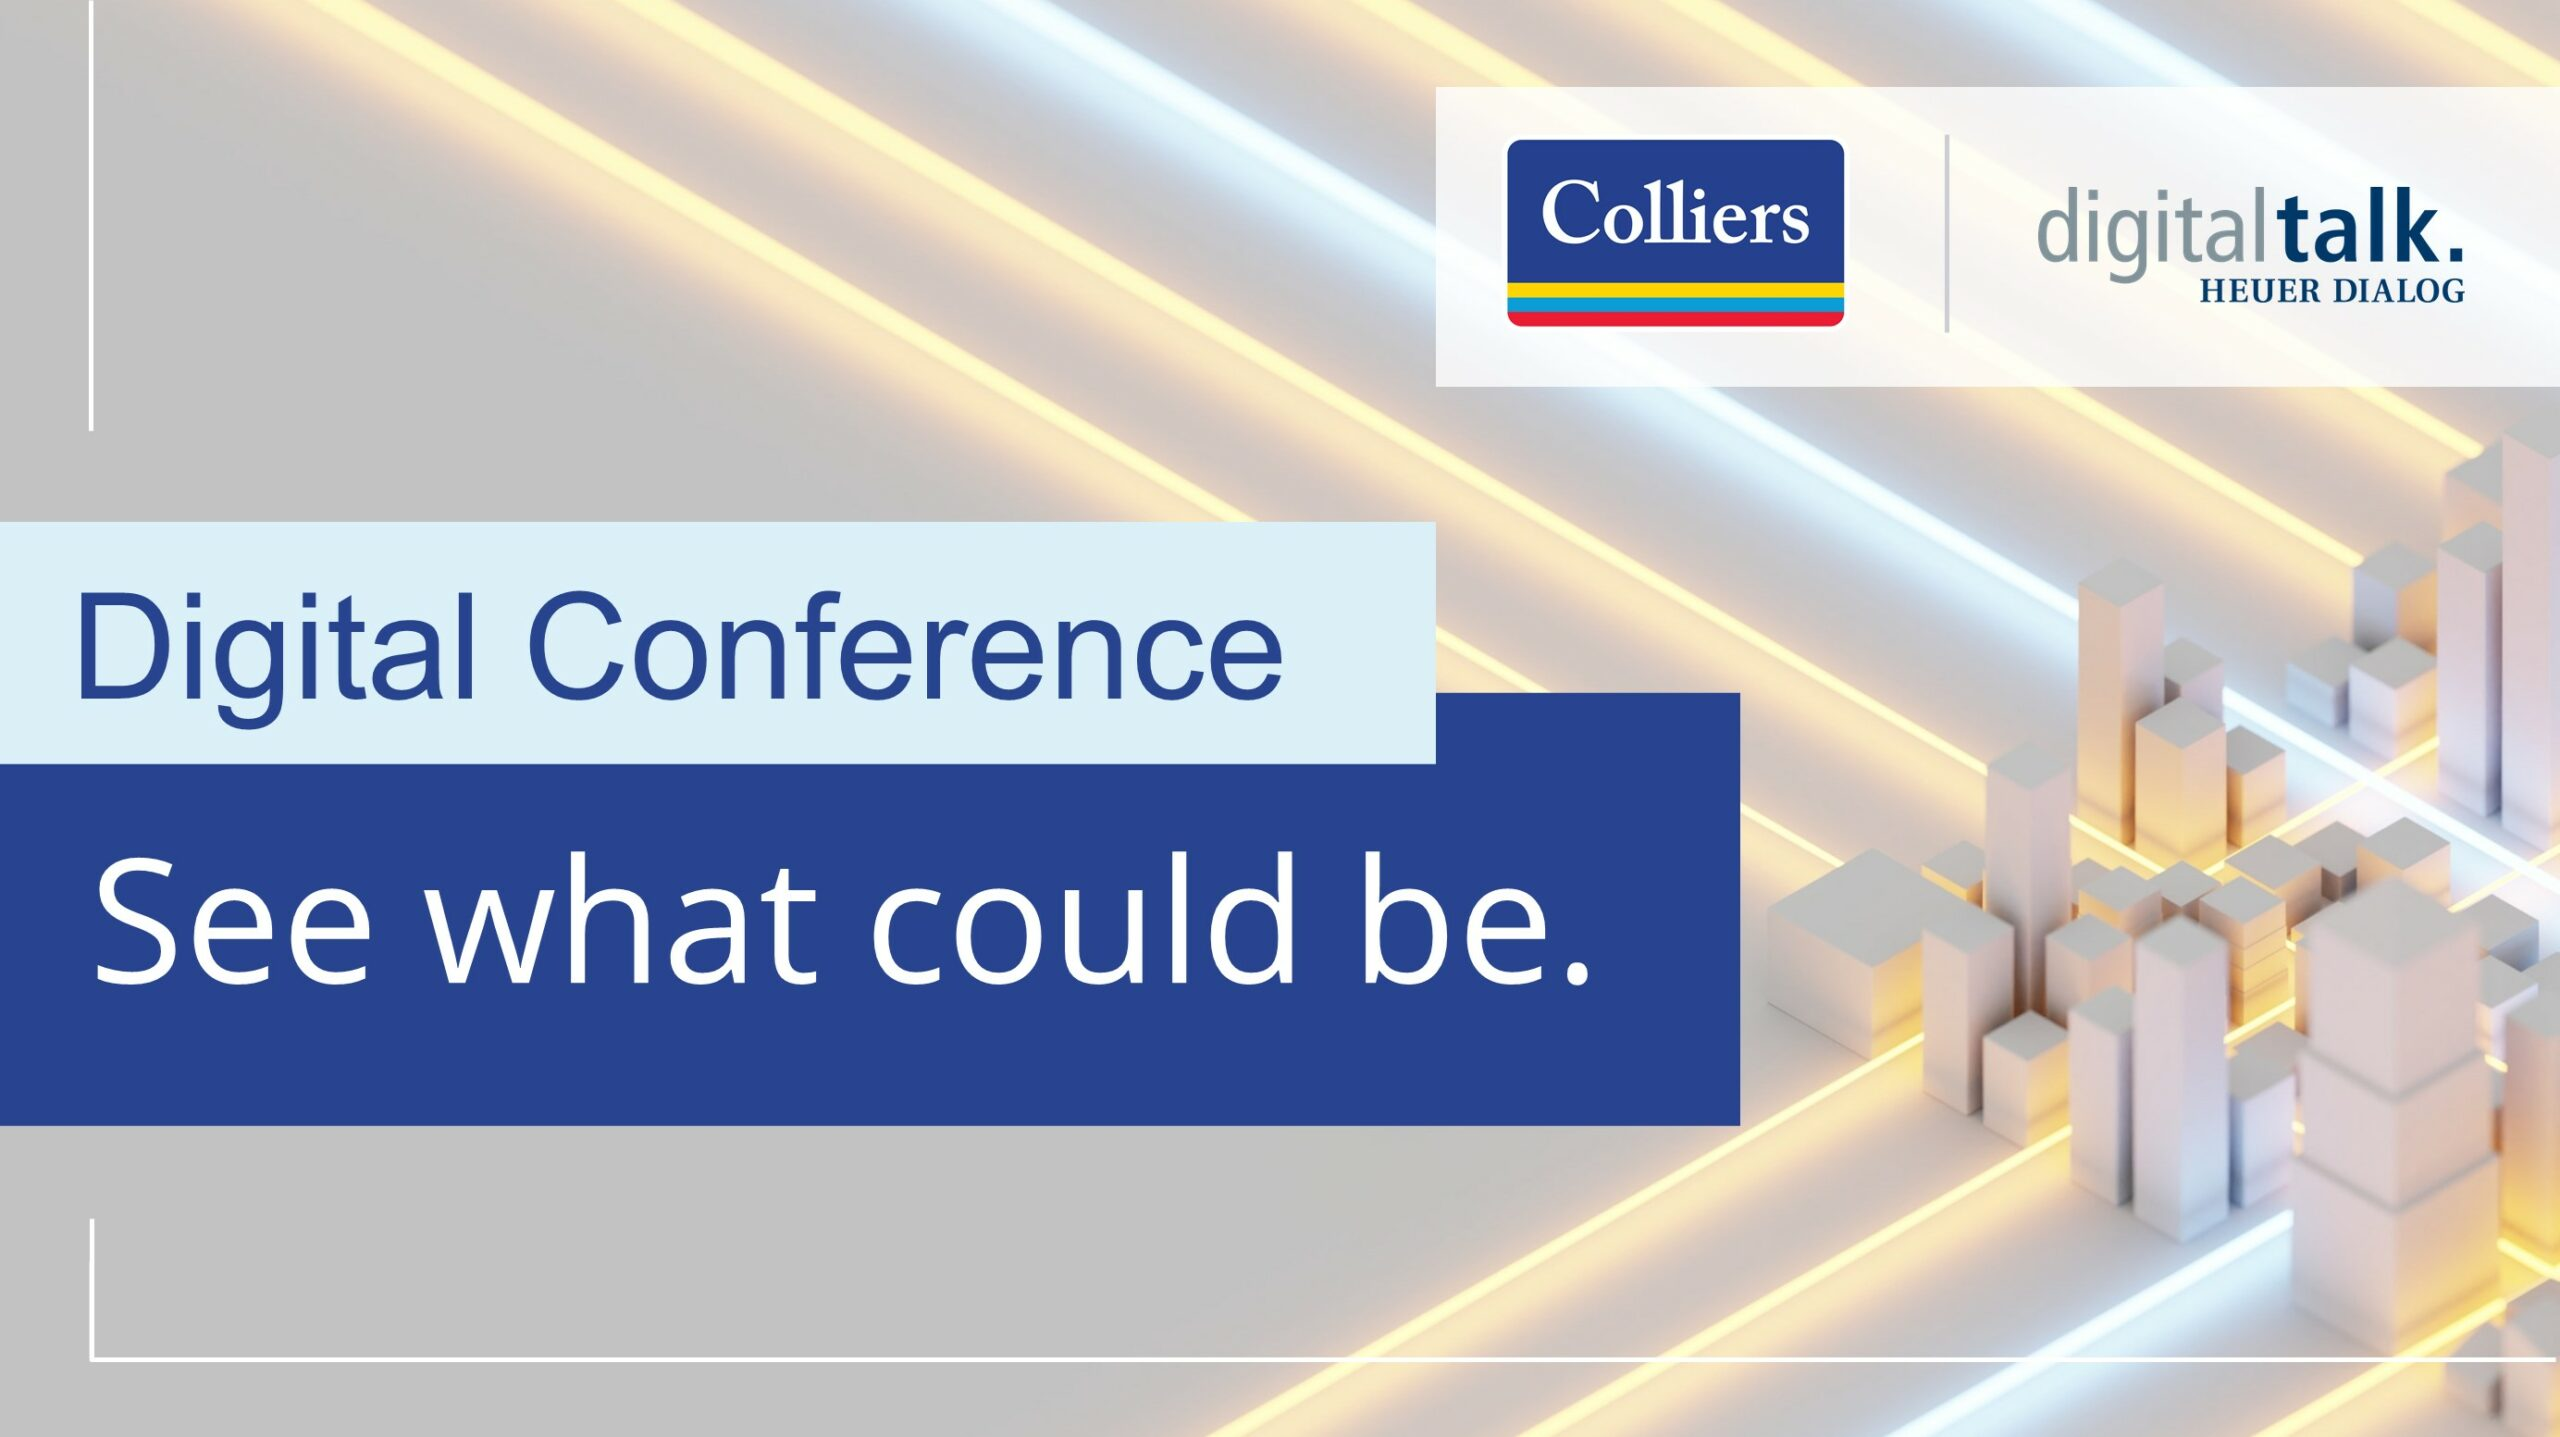 Colliers Digital Conference